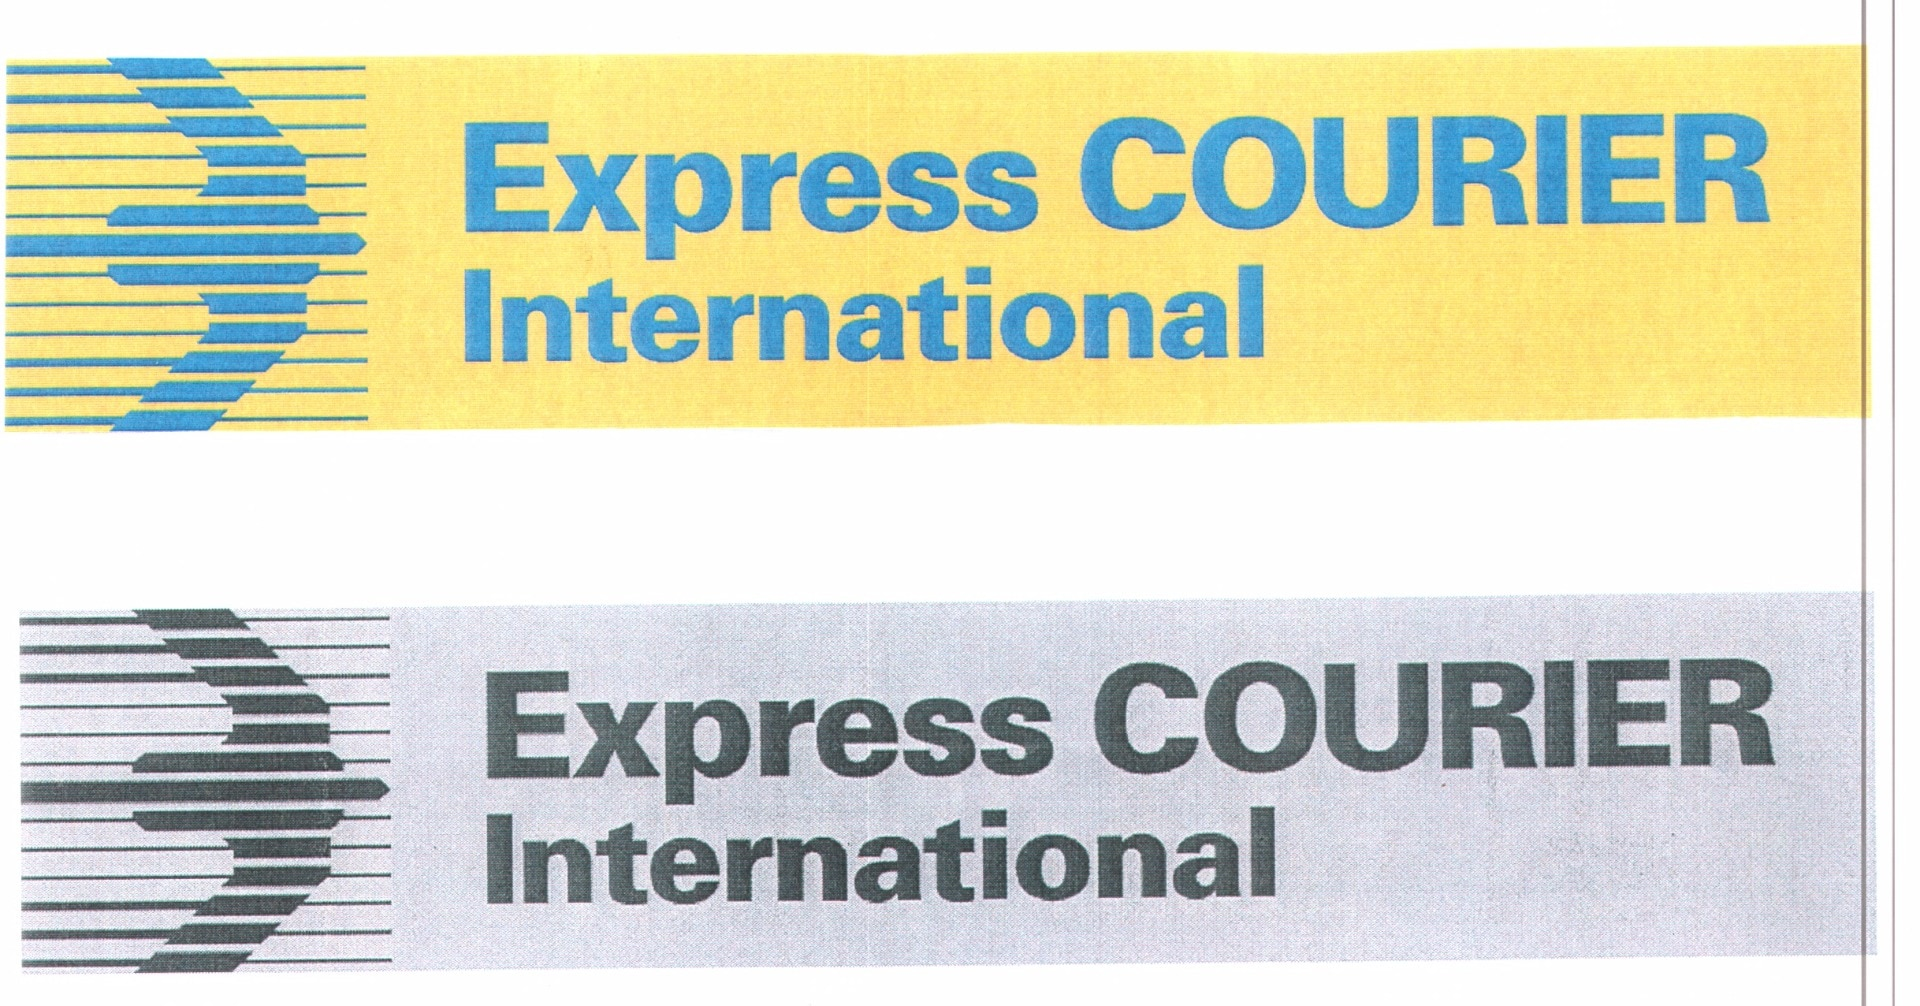 Airborne international Courier Services